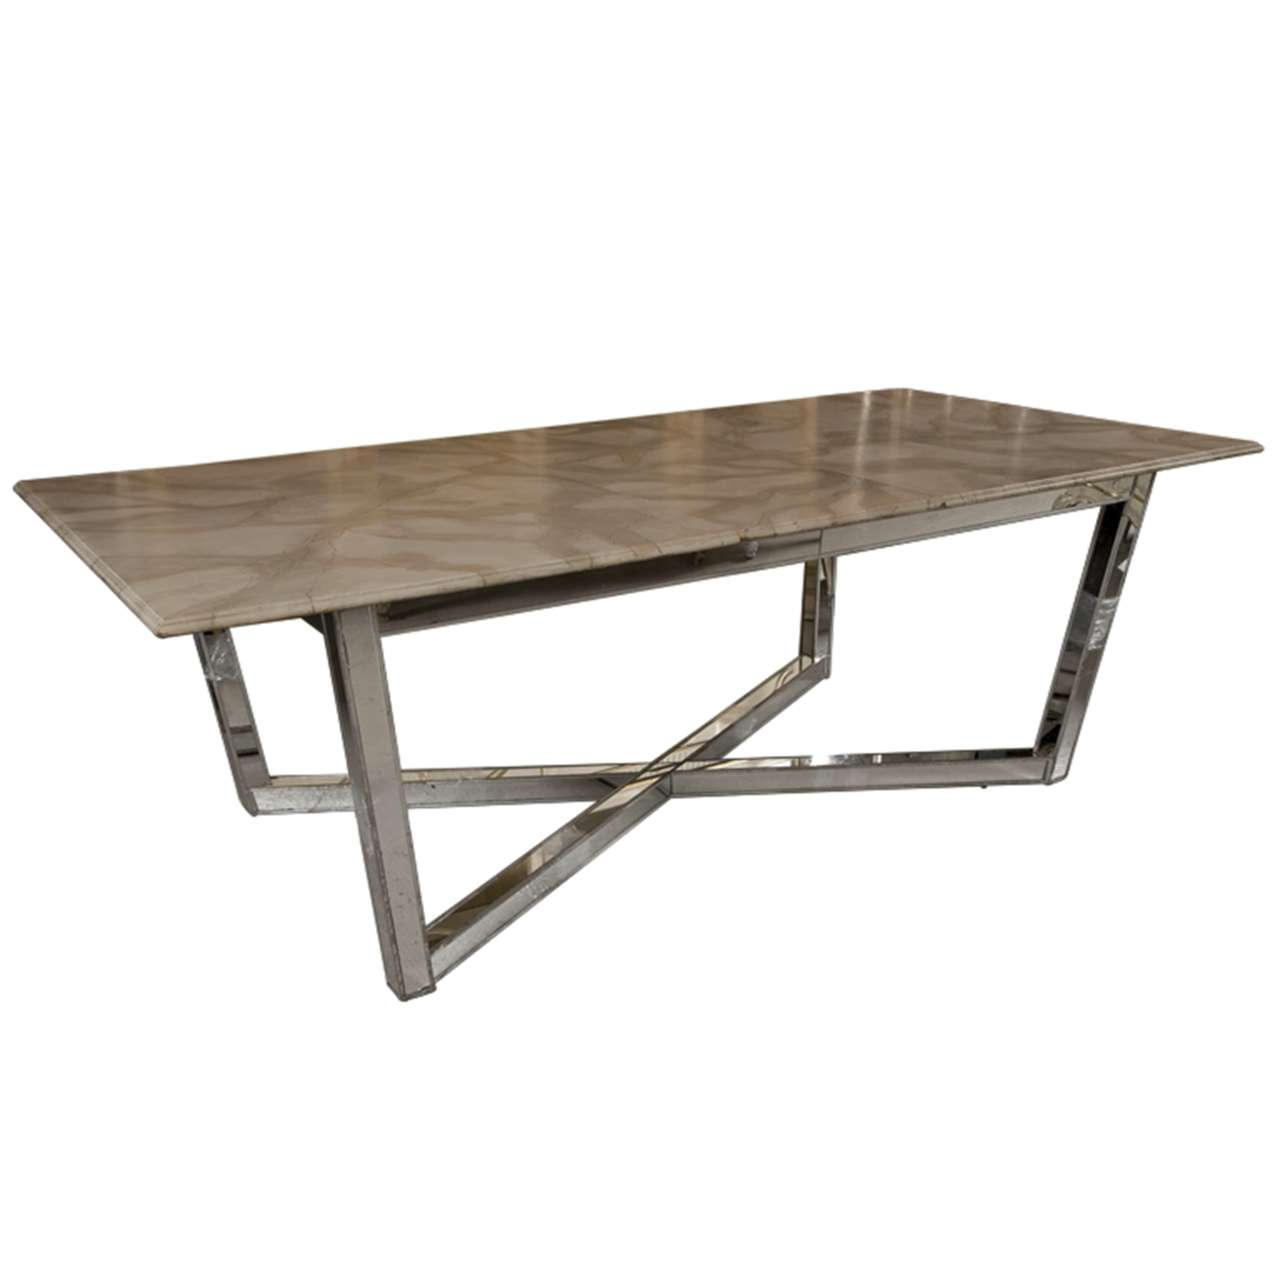 Mirrored base faux marble top dining table at 1stdibs for Biggest dining table